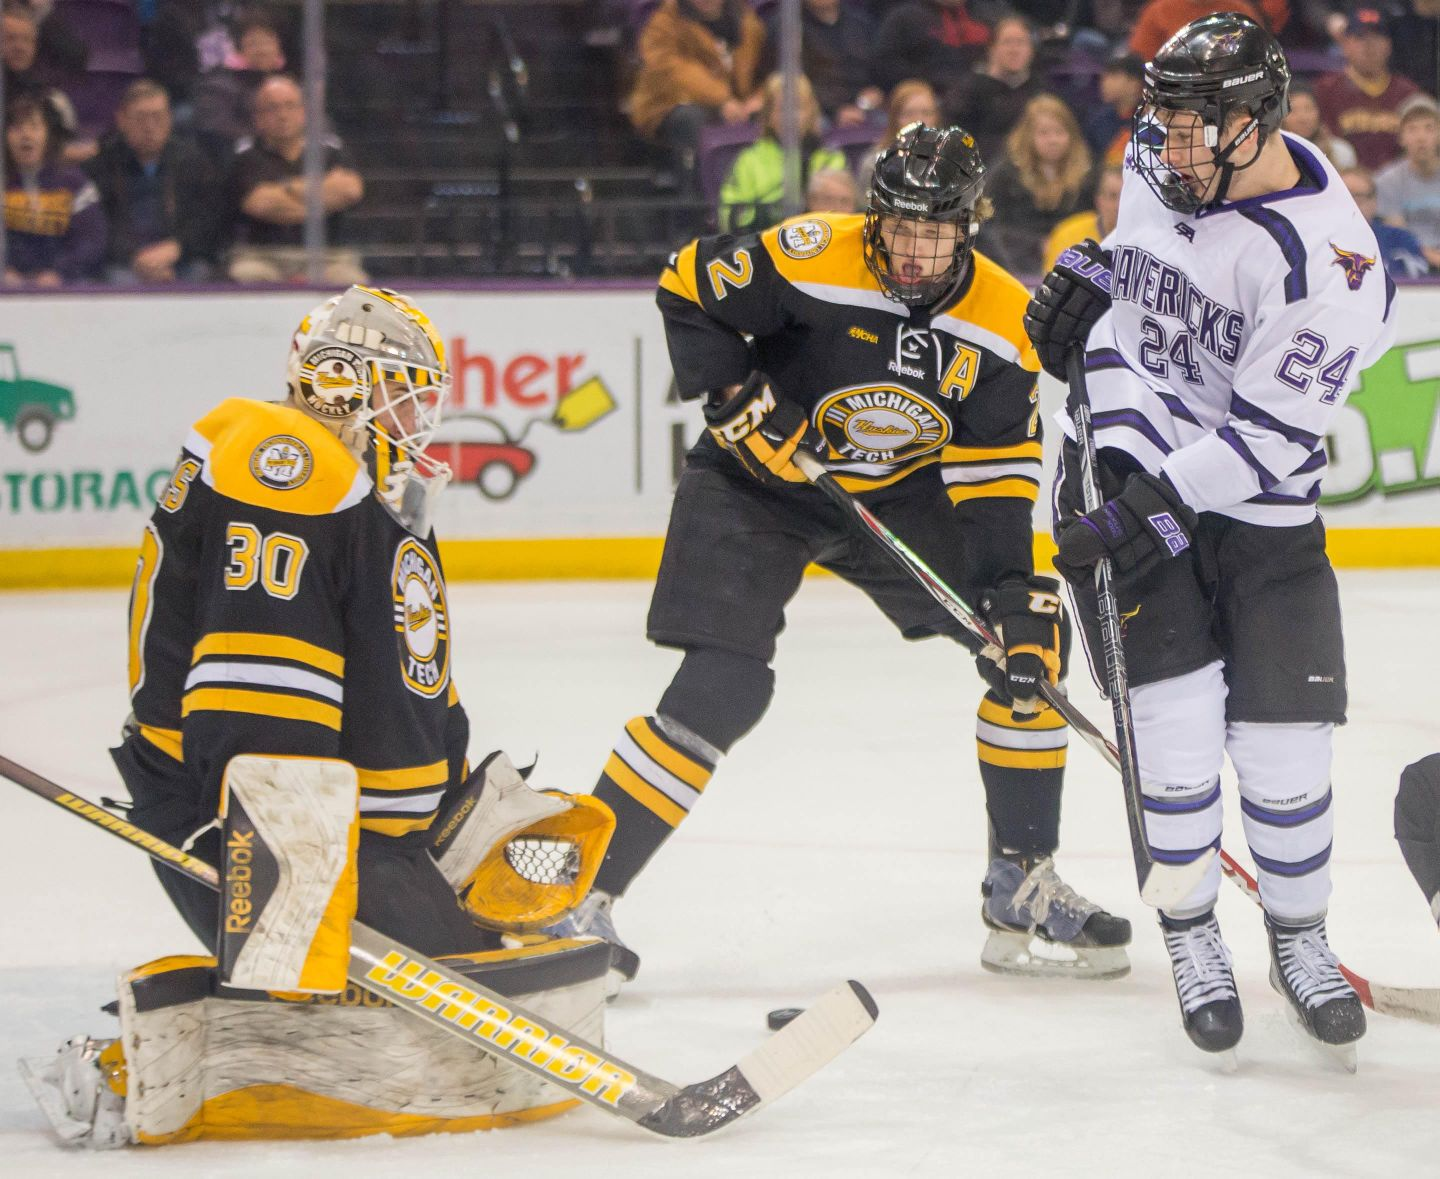 WCHA: Mavericks 1, Huskies 1